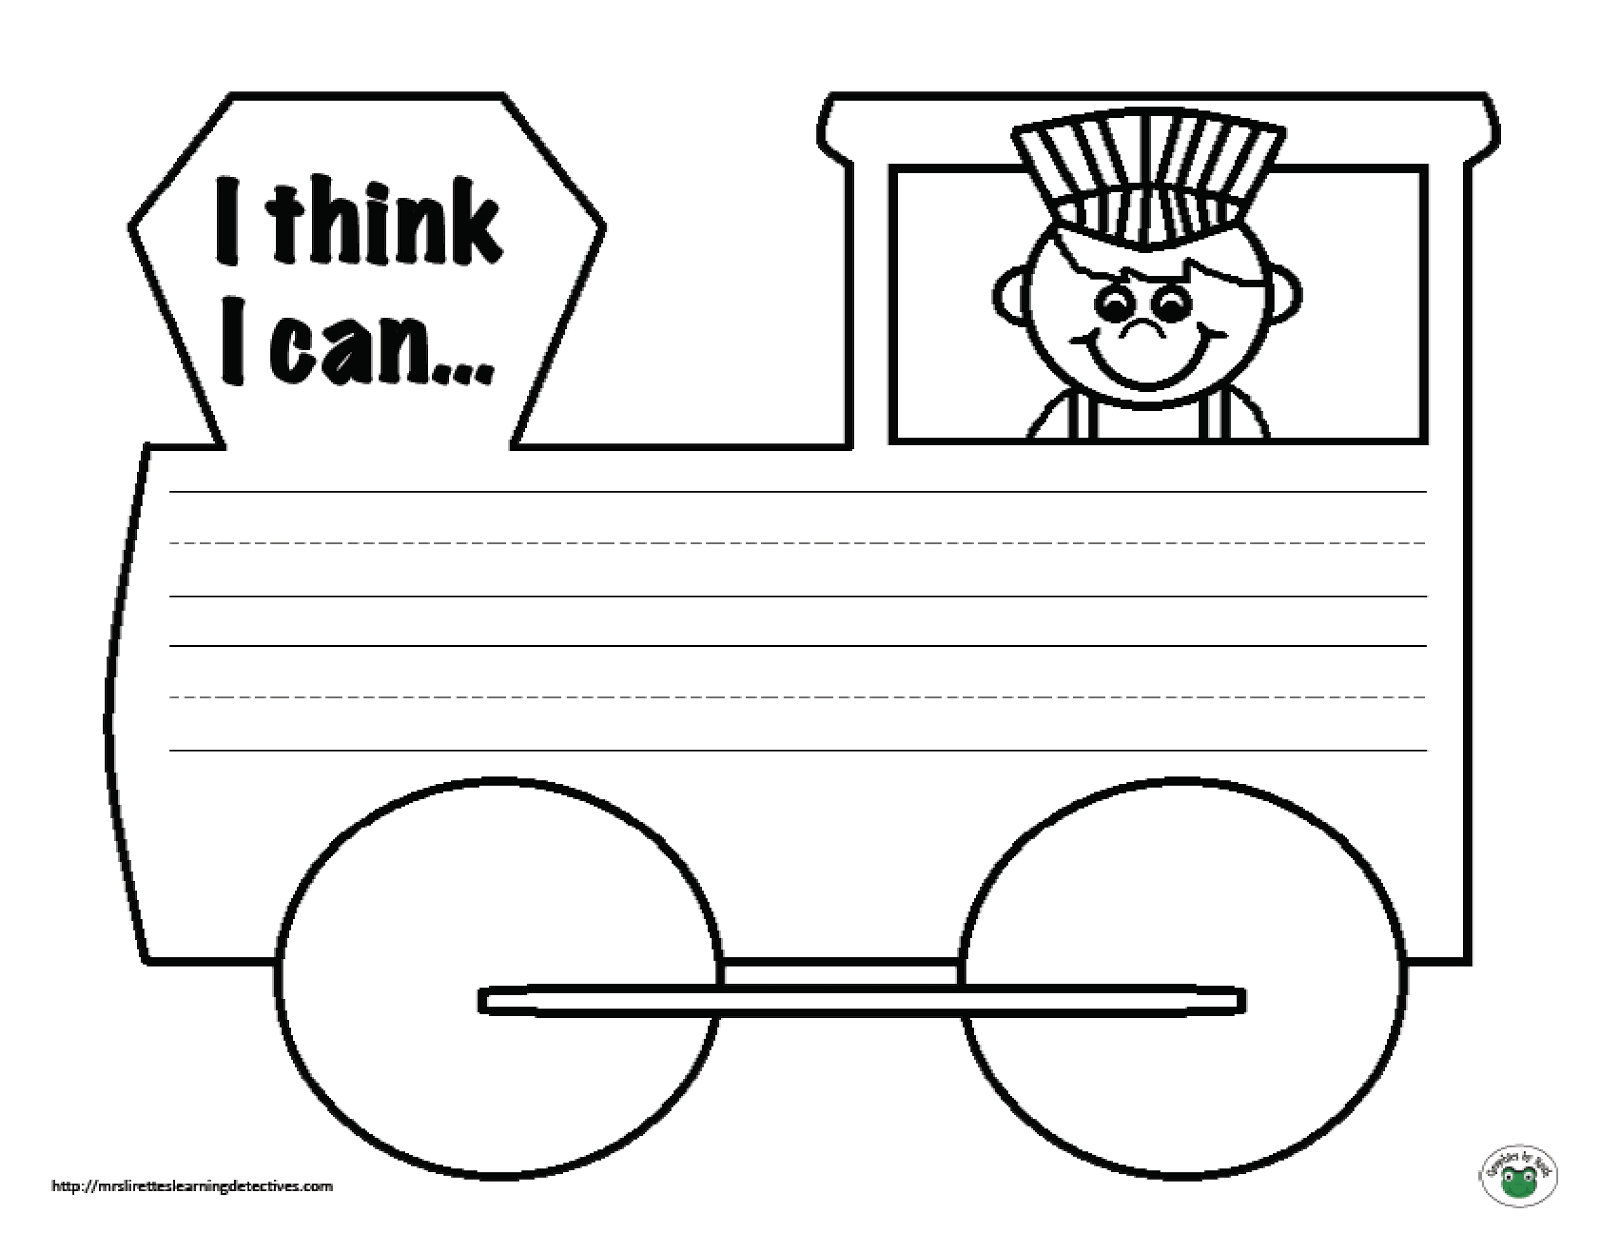 Mrs Lirette S Learning Detectives Writing Prompt Freebie The Little Engine That Could